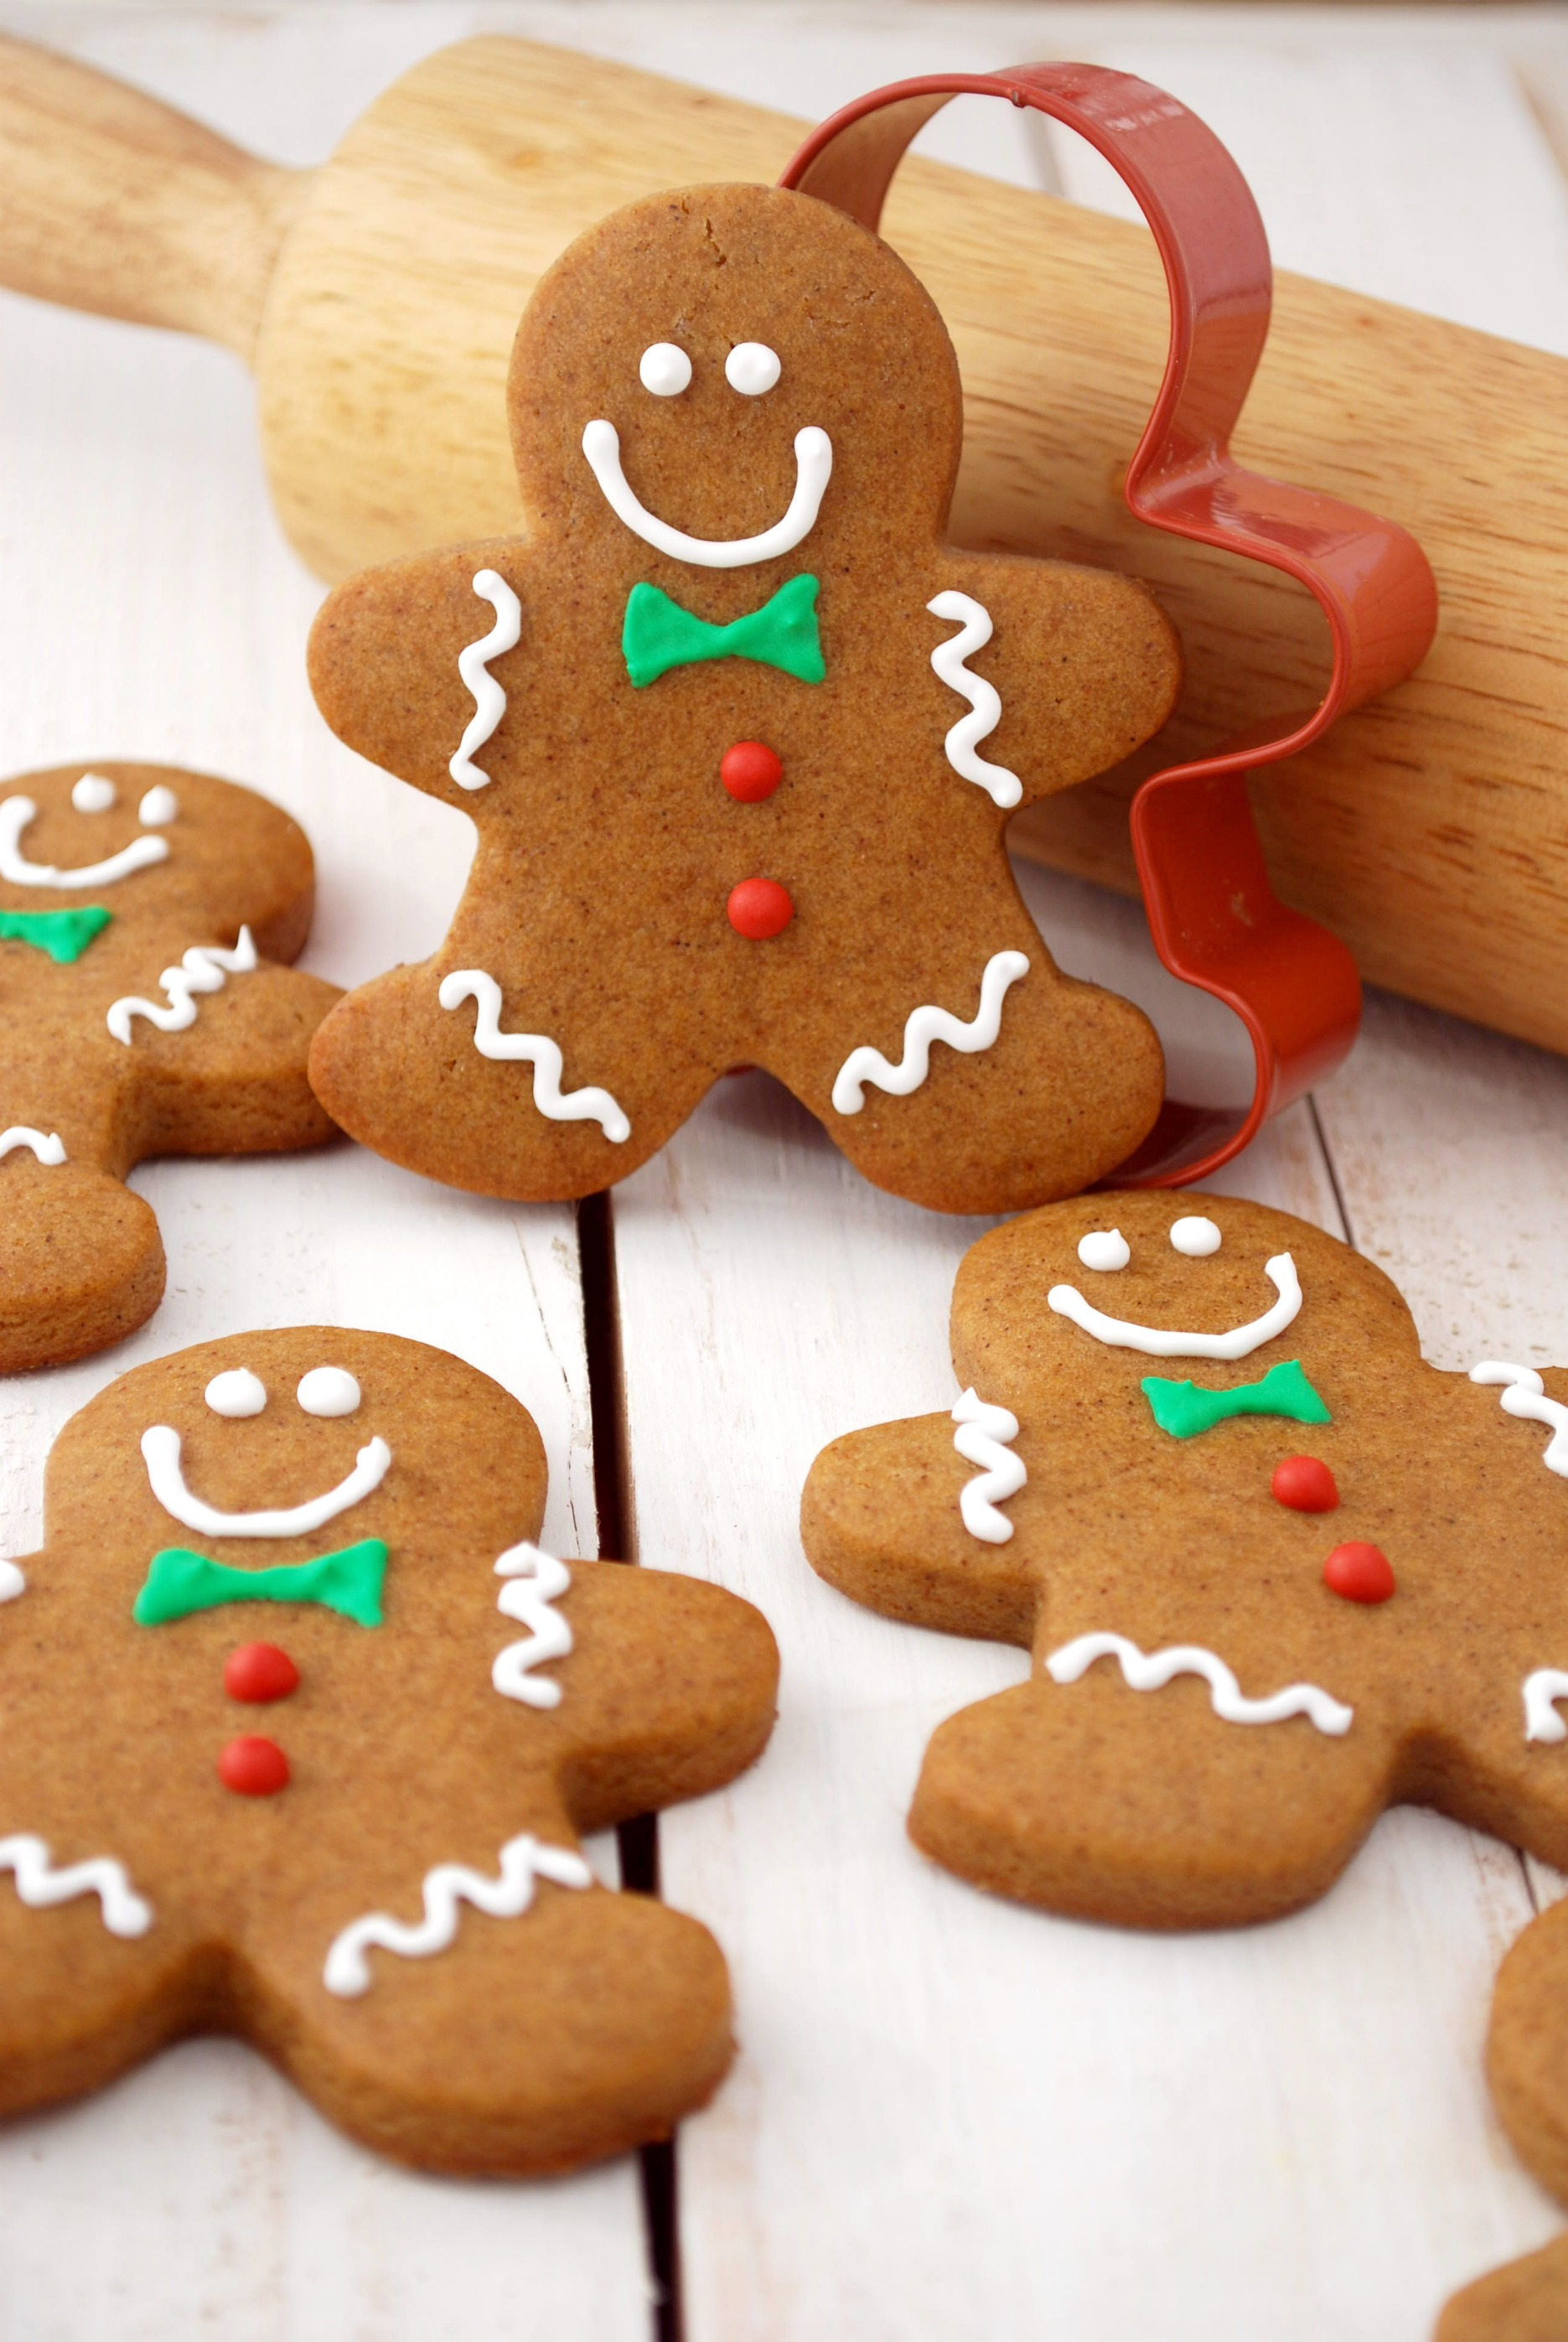 The recipe for gingerbread cookies